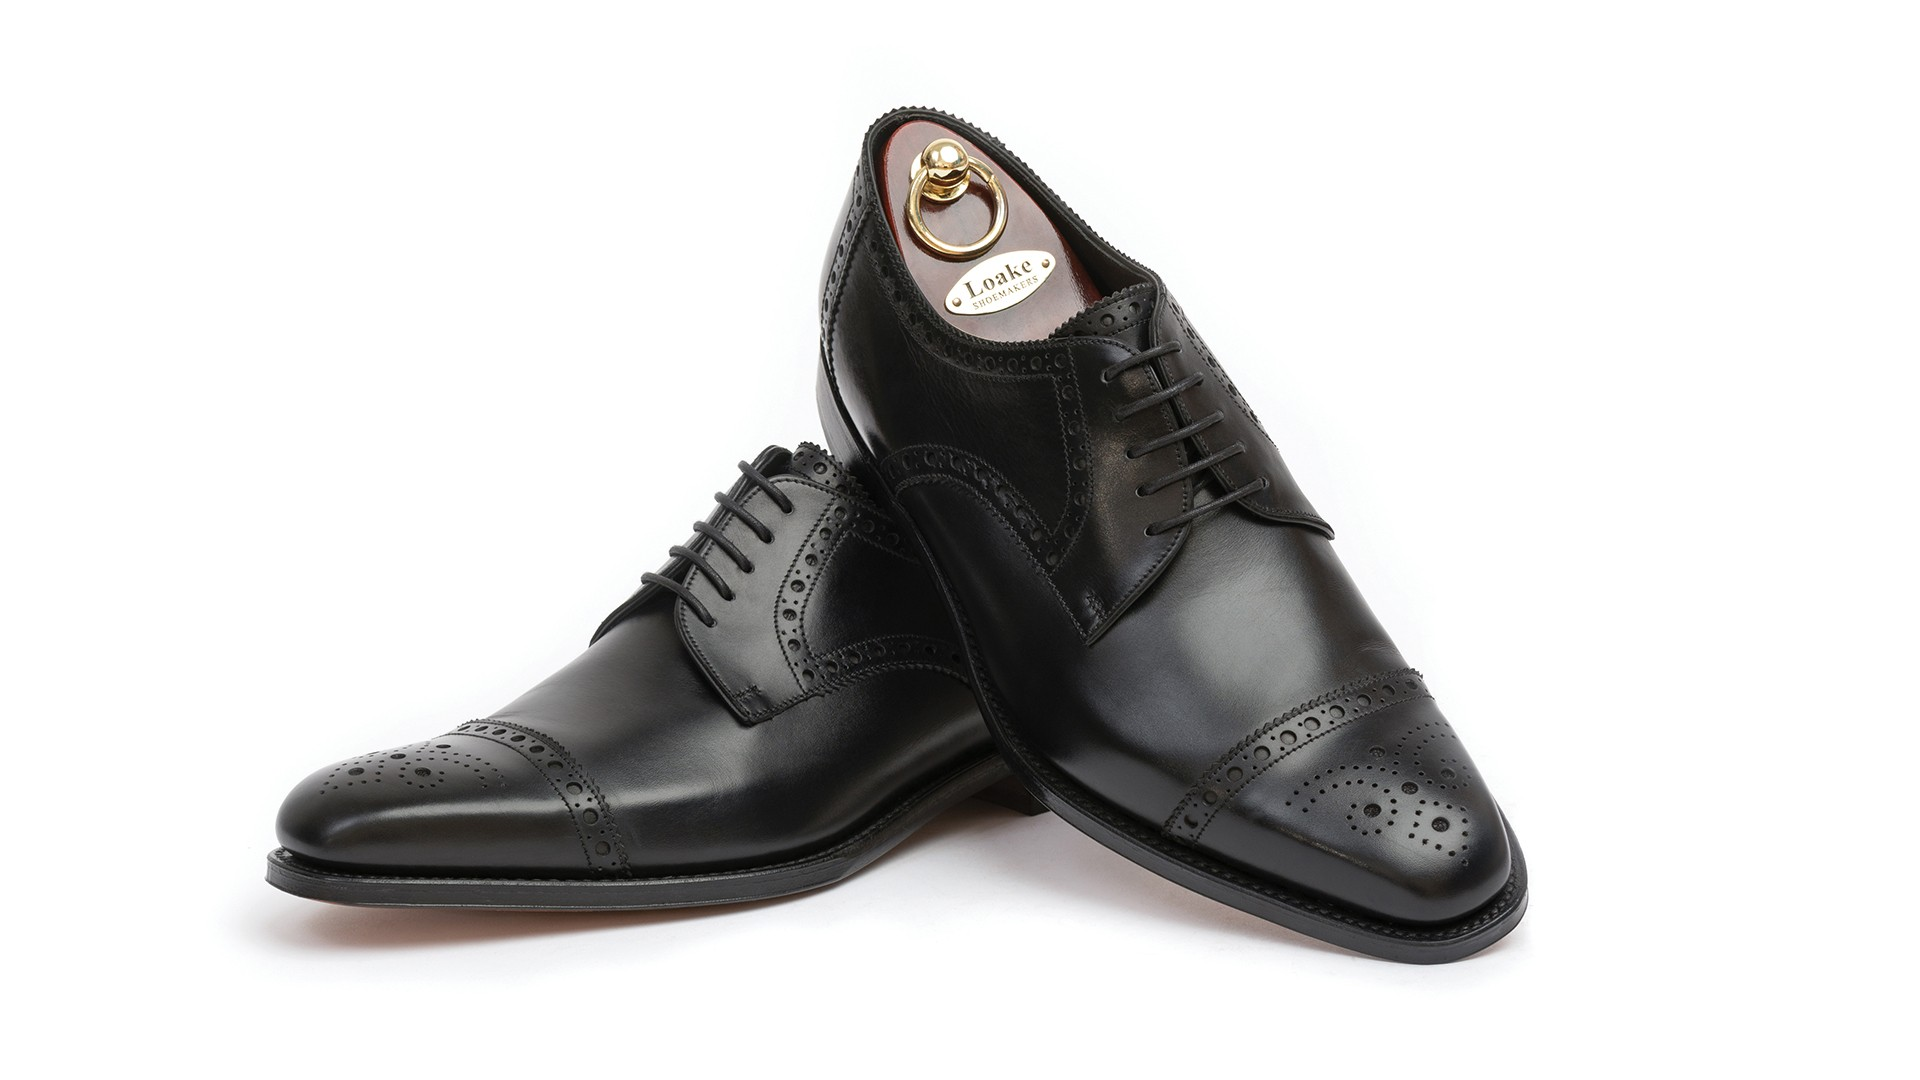 Loake 1880 Legacy collection